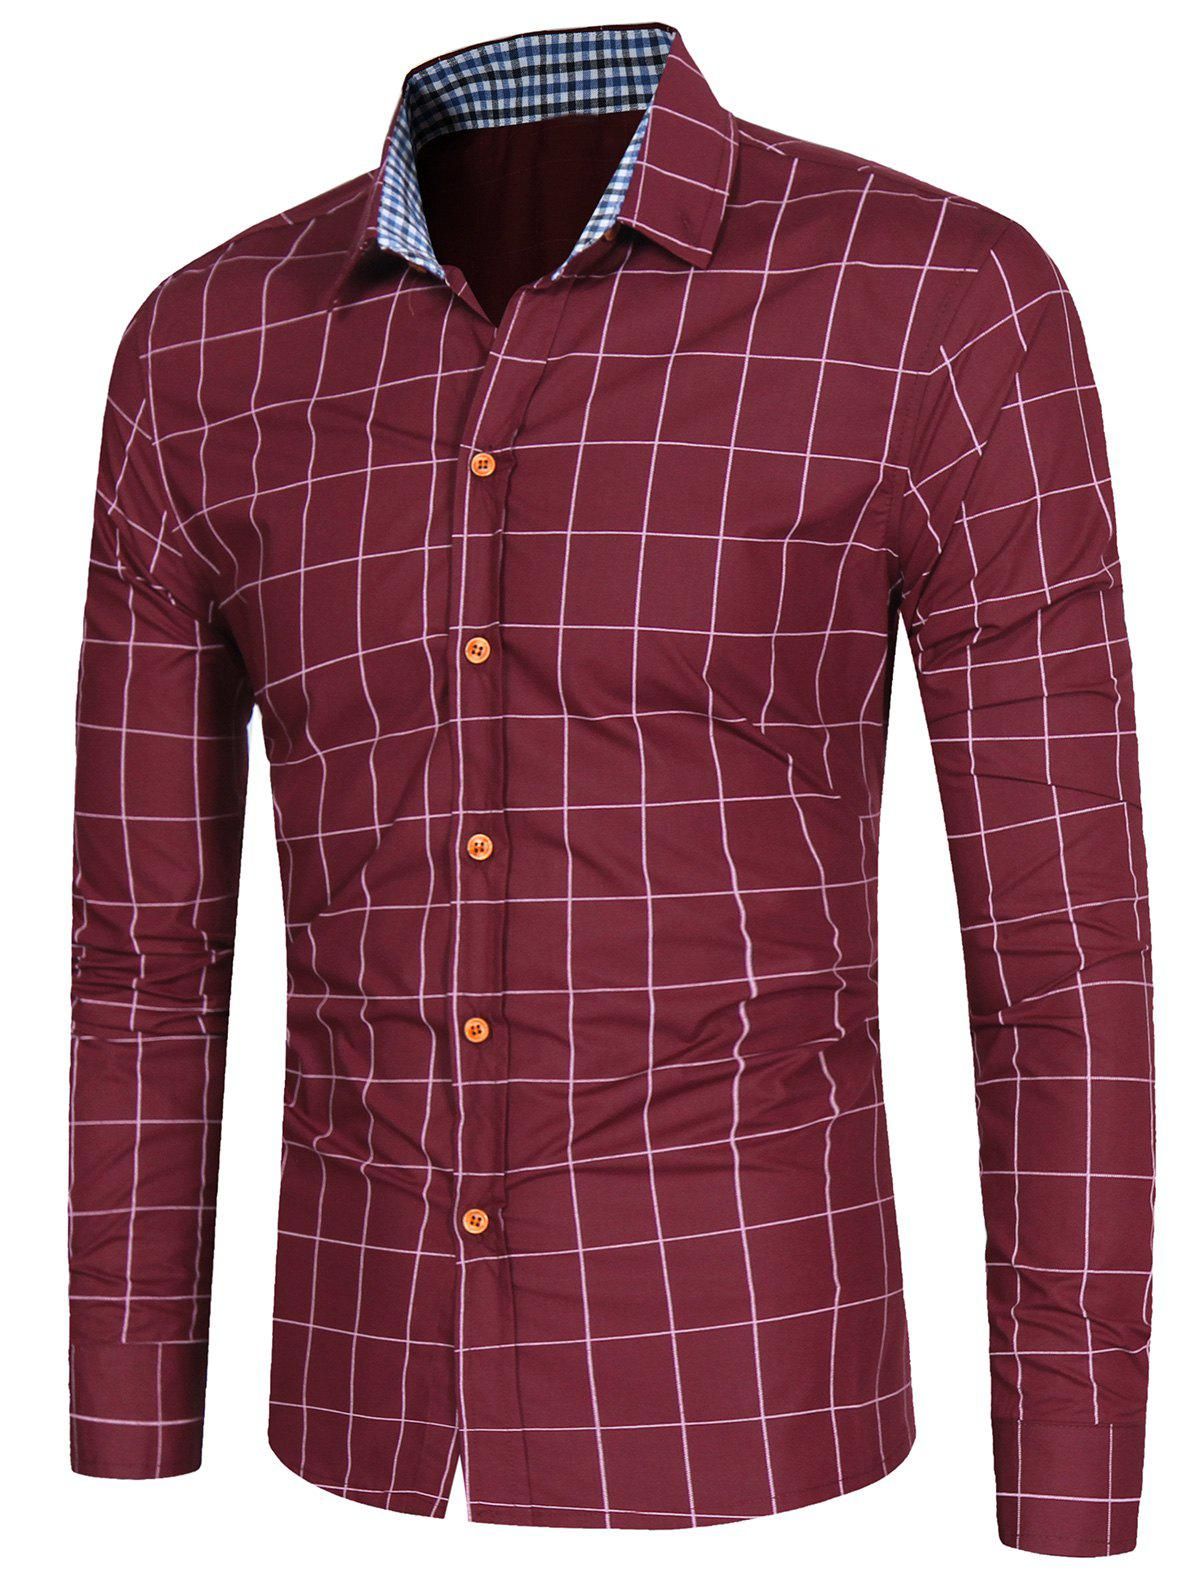 Casual Long Sleeve Grid ShirtMEN<br><br>Size: XL; Color: WINE RED; Shirts Type: Casual Shirts; Material: Cotton,Polyester; Sleeve Length: Full; Collar: Turndown Collar; Pattern Type: Checkered; Weight: 0.2500kg; Package Contents: 1 x Shirt;